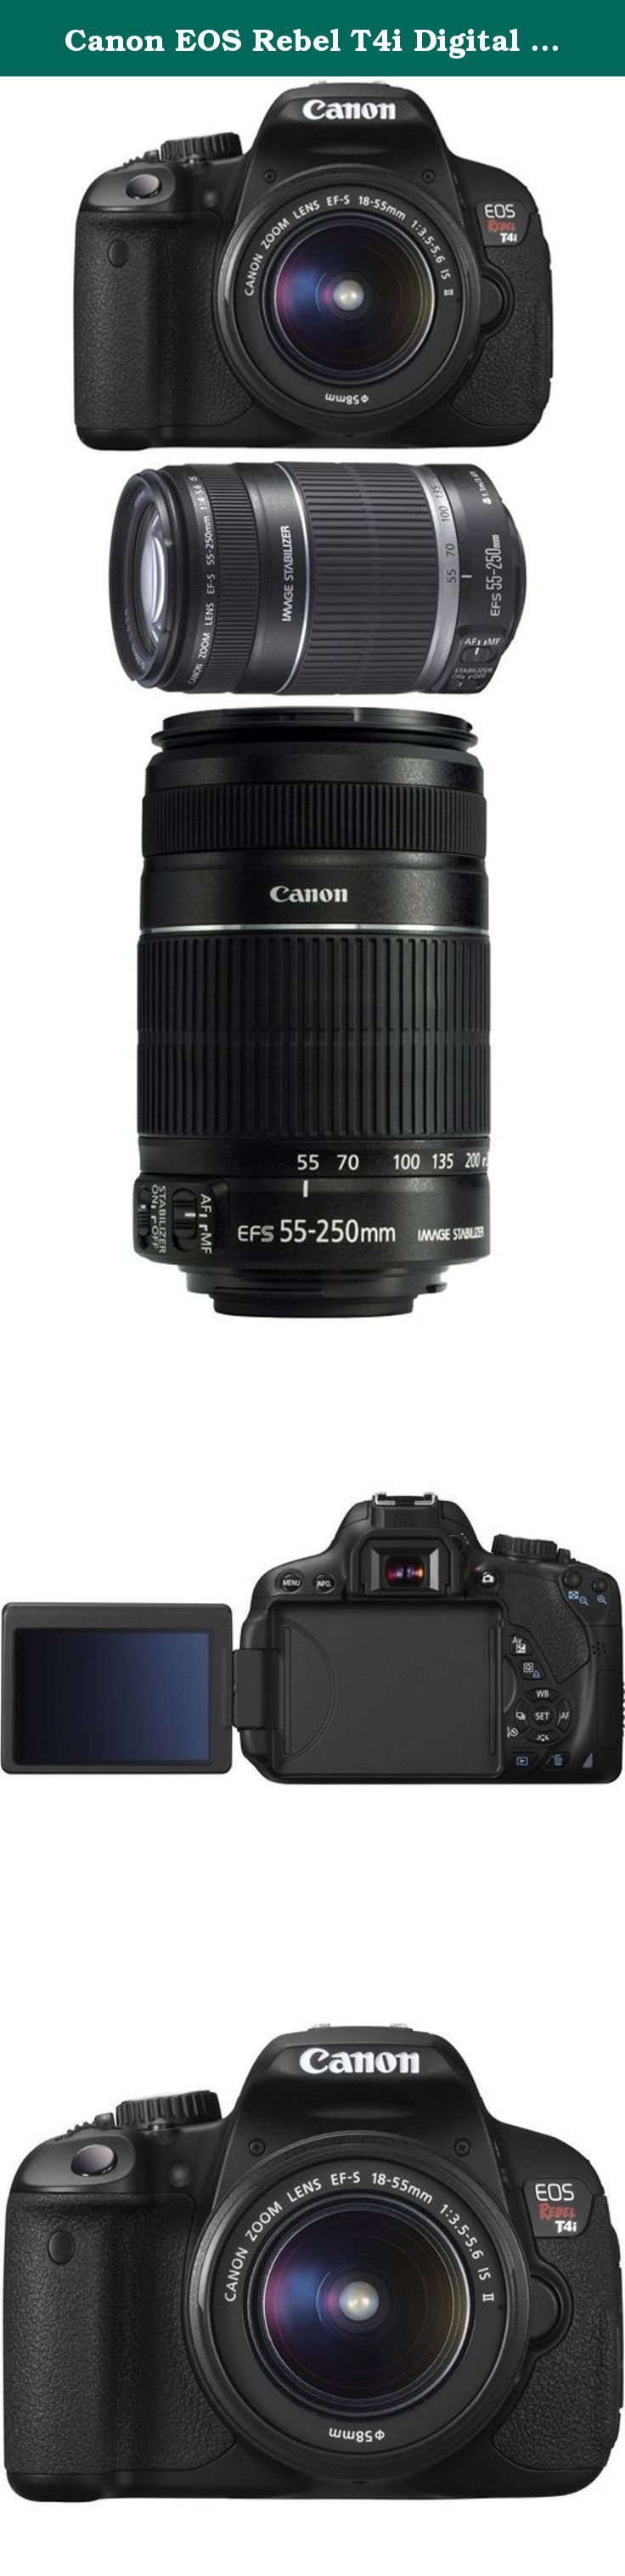 Canon EOS Rebel T4i Digital SLR Camera Body & EF-S 18-55mm IS II Lens with EF-S 55-250mm f/4.0-5.6 IS II Zoom Lens. Includes EF-S 18-55mm IS II Zoom Lens & EF-S 55-250mm f/4.0-5.6 IS II Zoom Lens 18.0 Megapixel CMOS (APS-C) sensor and DIGIC 5 Image Processor 3.0-inch Vari-angle Clear View Touch Screen LCD Enhanced EOS Full HD Movie Mode with Movie Servo AF Also features: 14-bit A/D Conversion; 5 FPS continuous shooting; ISO 100-12800 and expandable to 25600 in H mode; new Hybrid CMOS AF;...